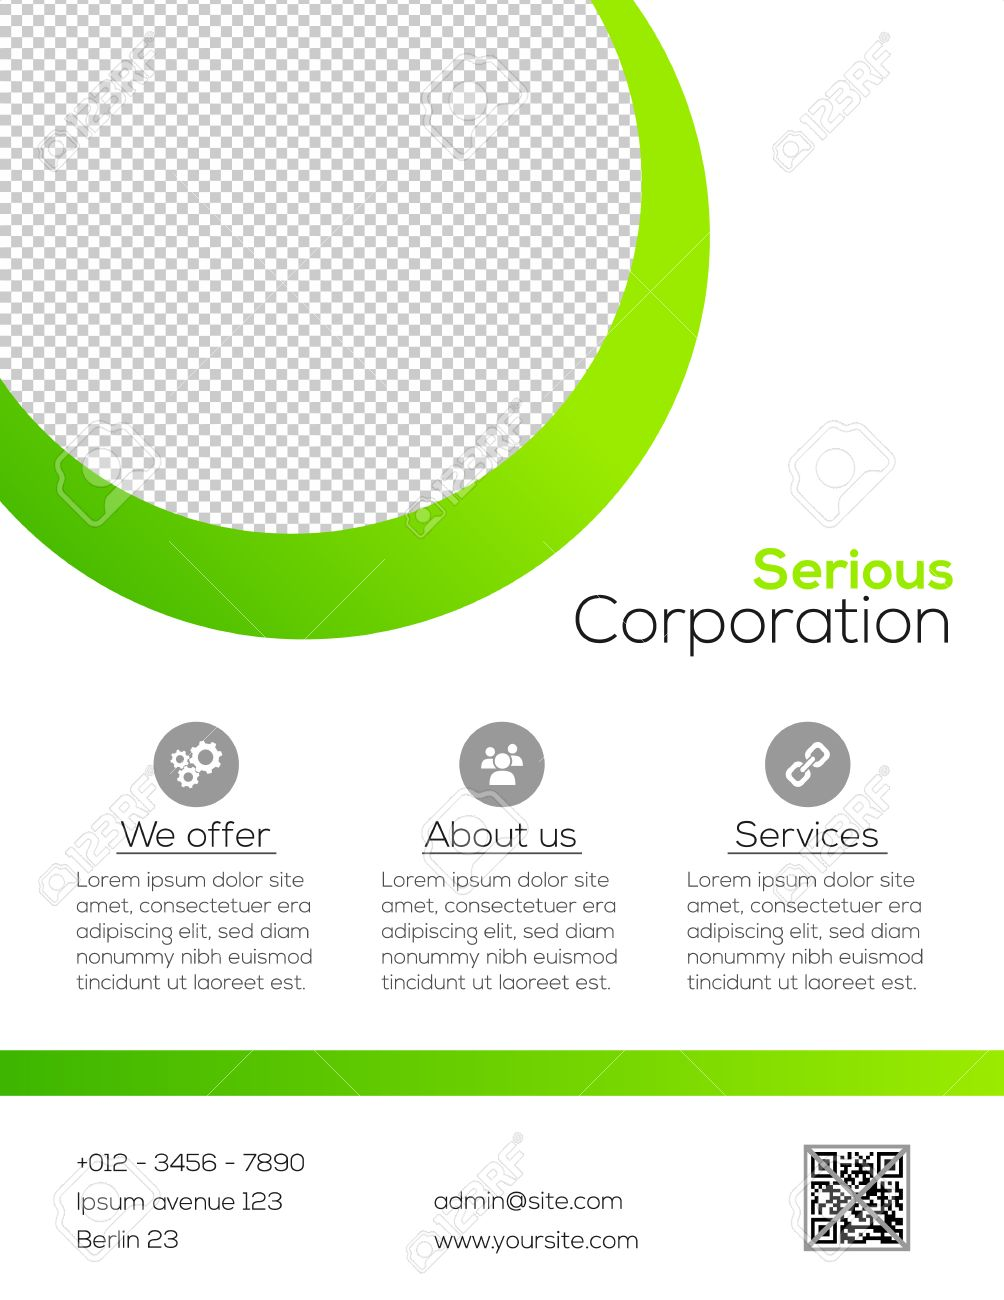 business flyer template simple white and green design royalty business flyer template simple white and green design stock vector 33989118